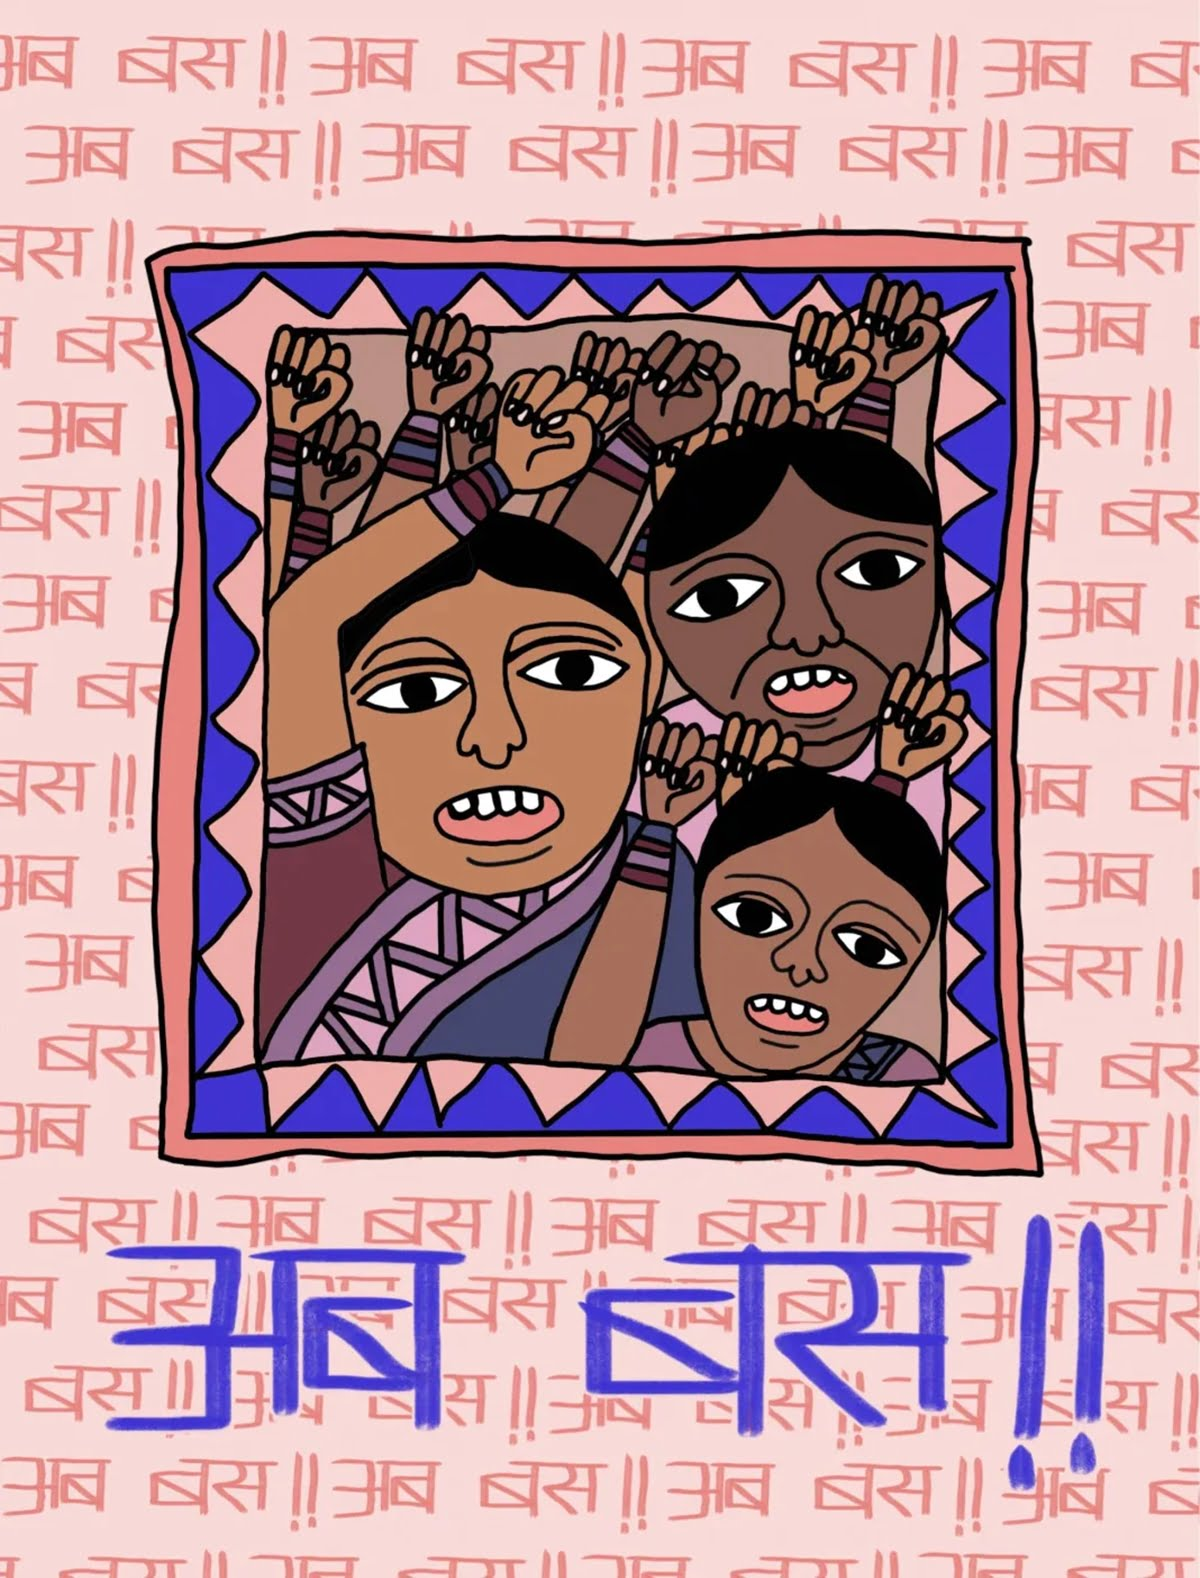 One Year Since The Gangrape Of A Dalit Girl In Hathras...